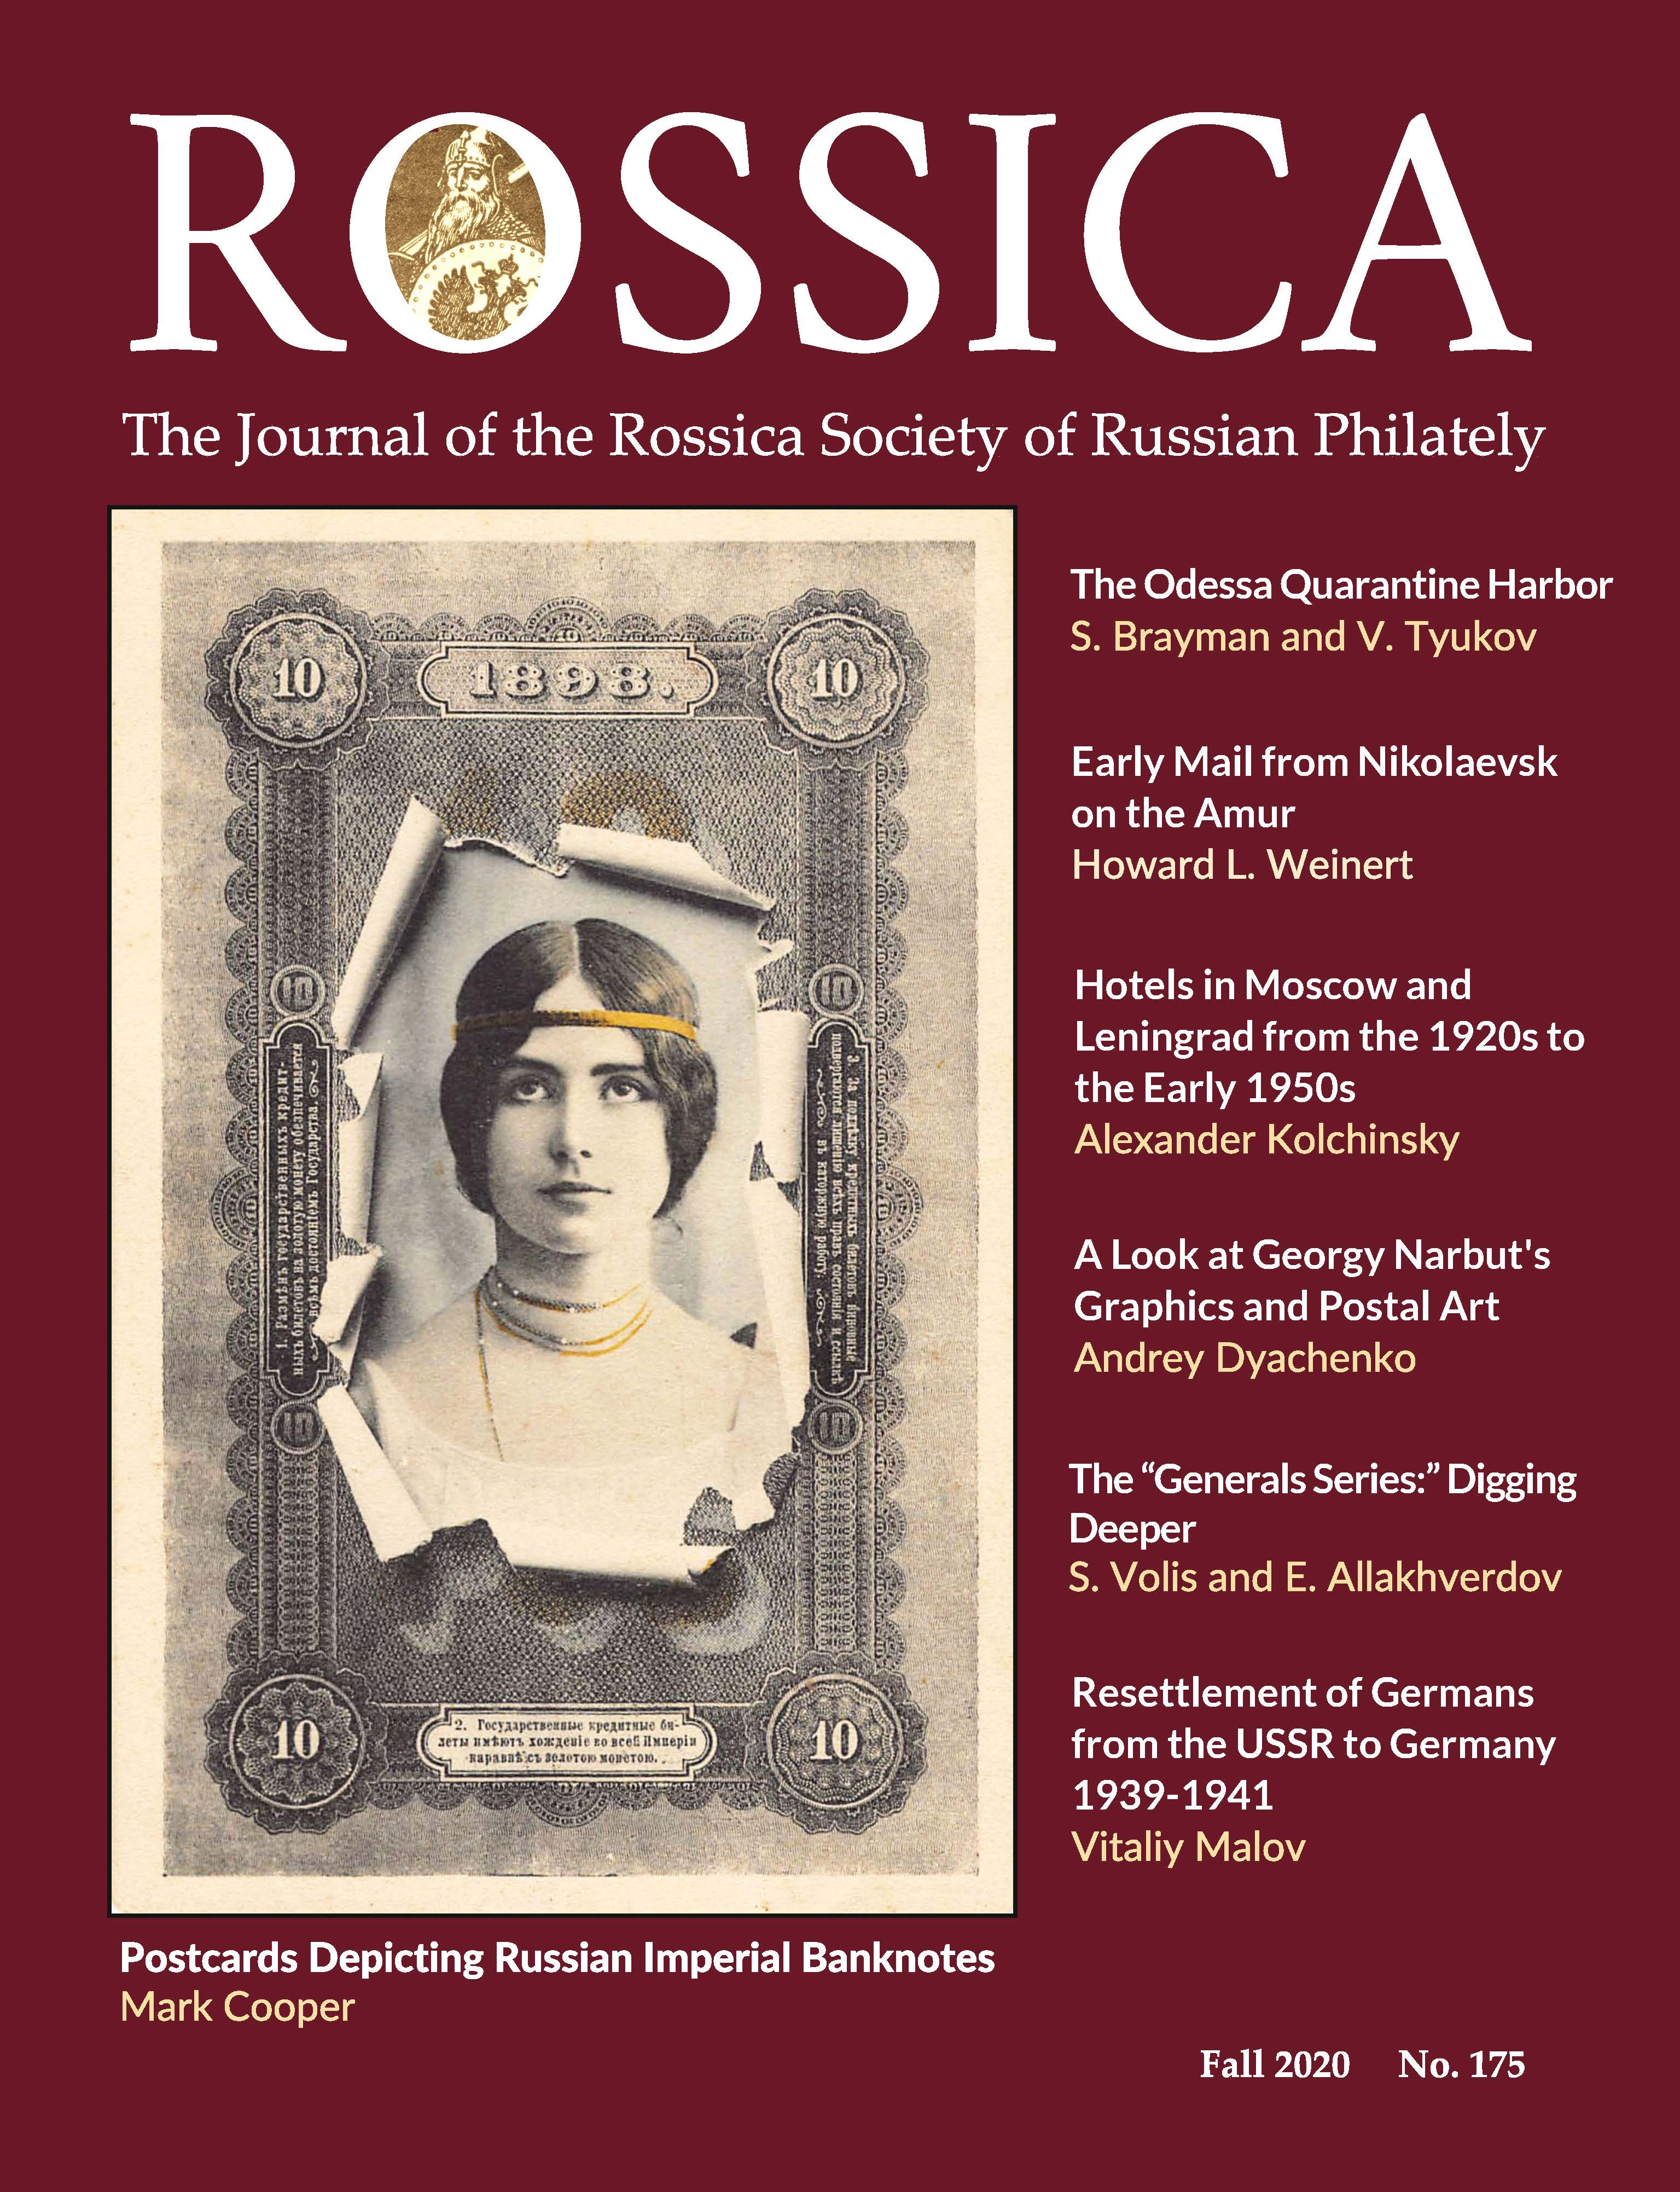 The Rossica Journal